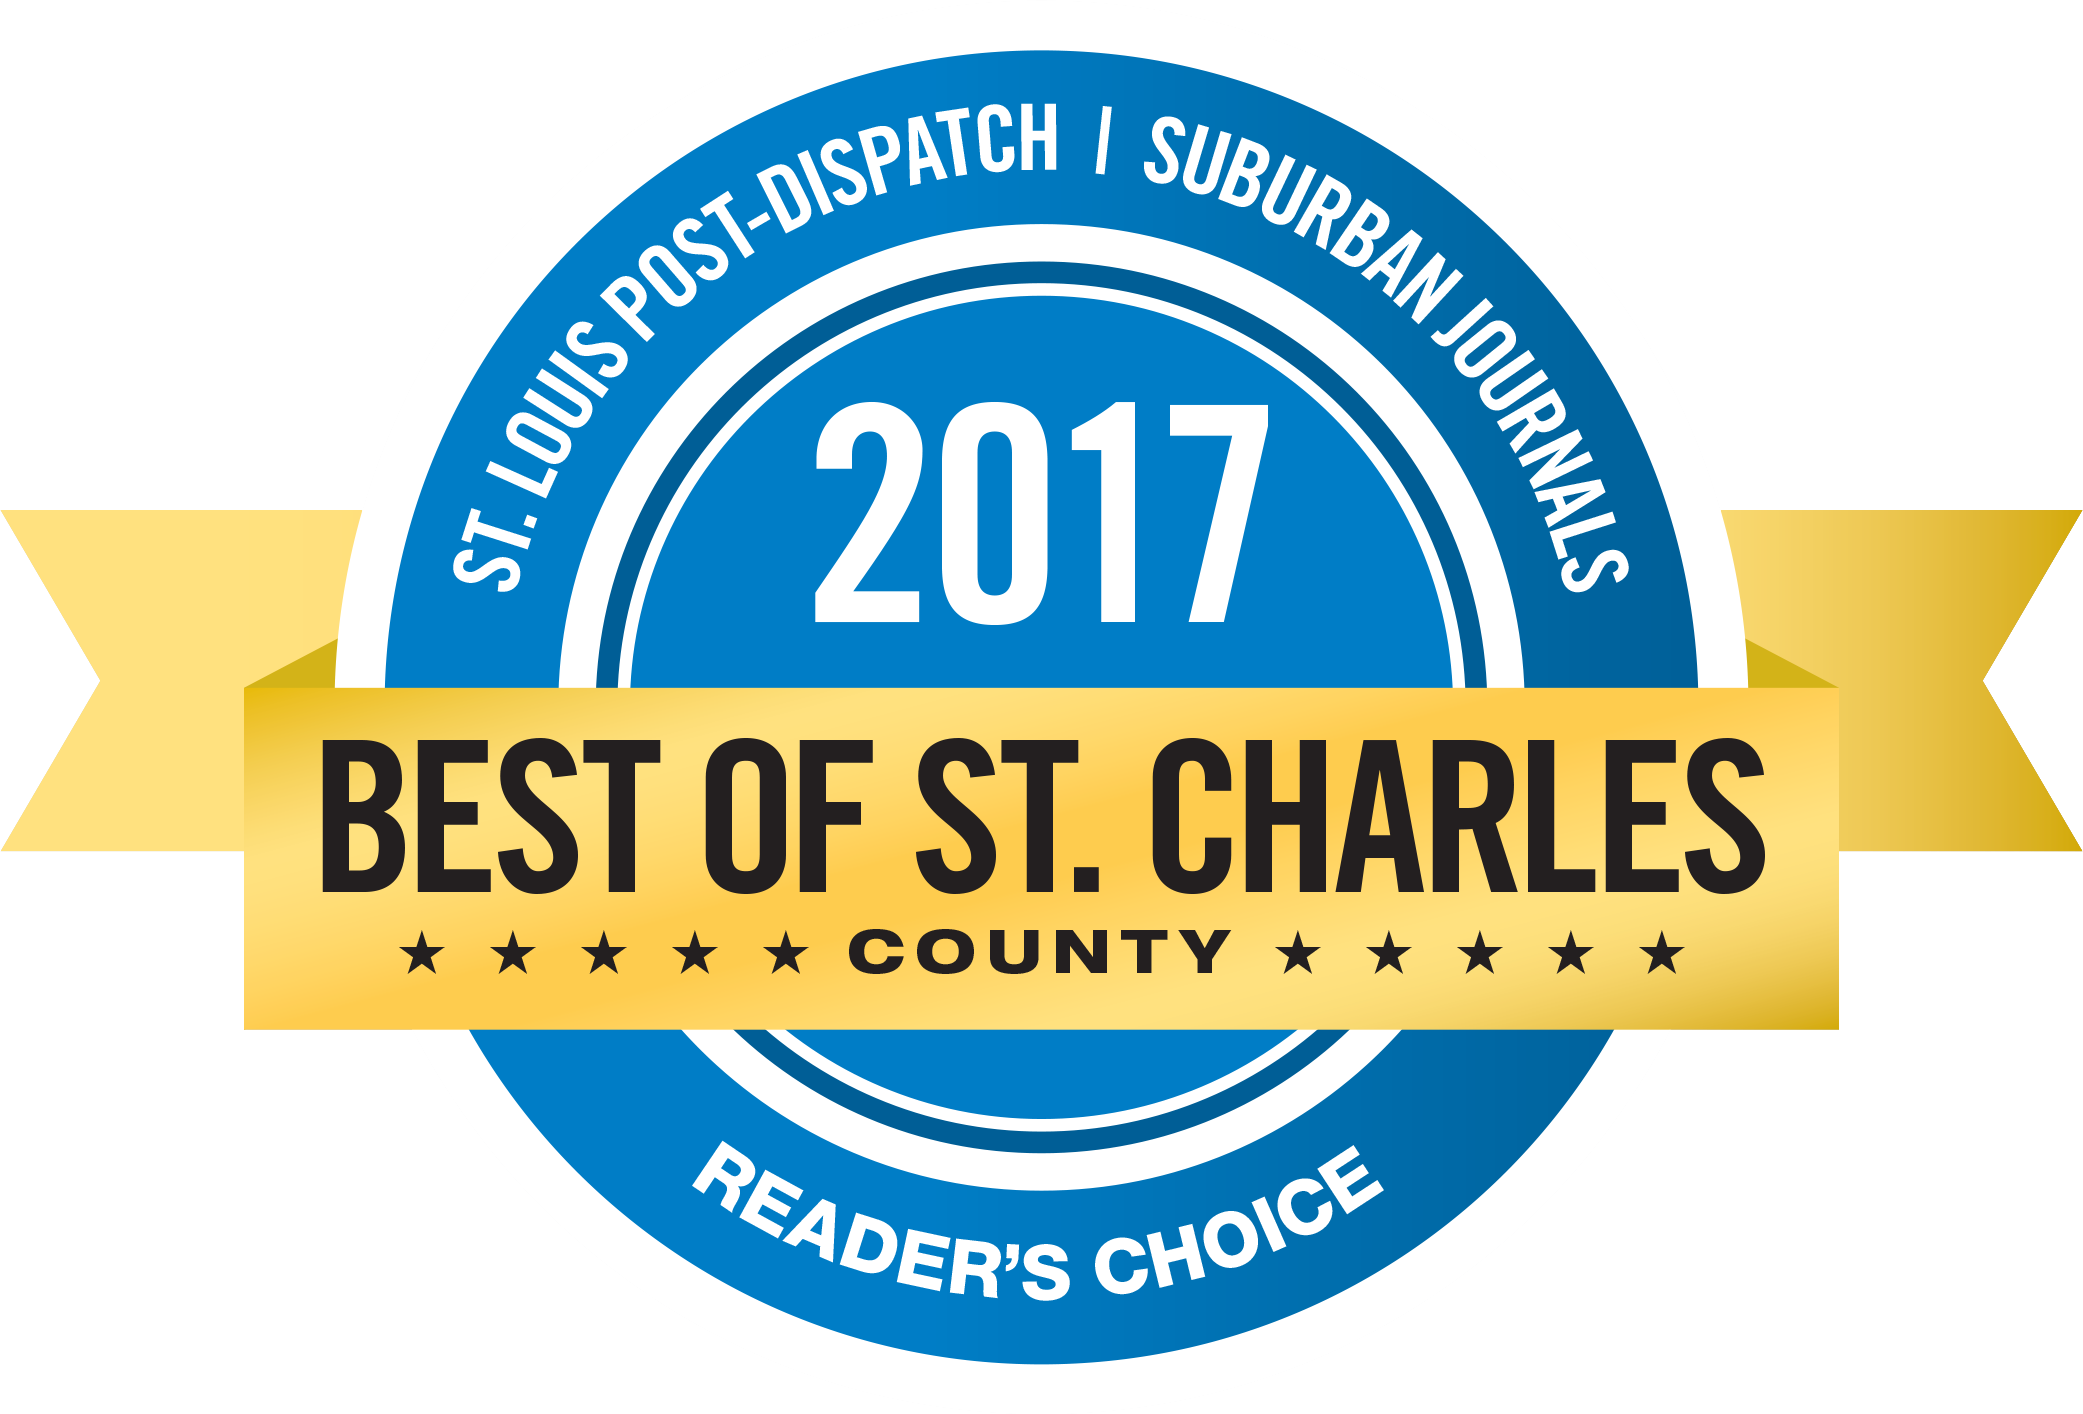 Sams Carpet - Best of St Charles 2017